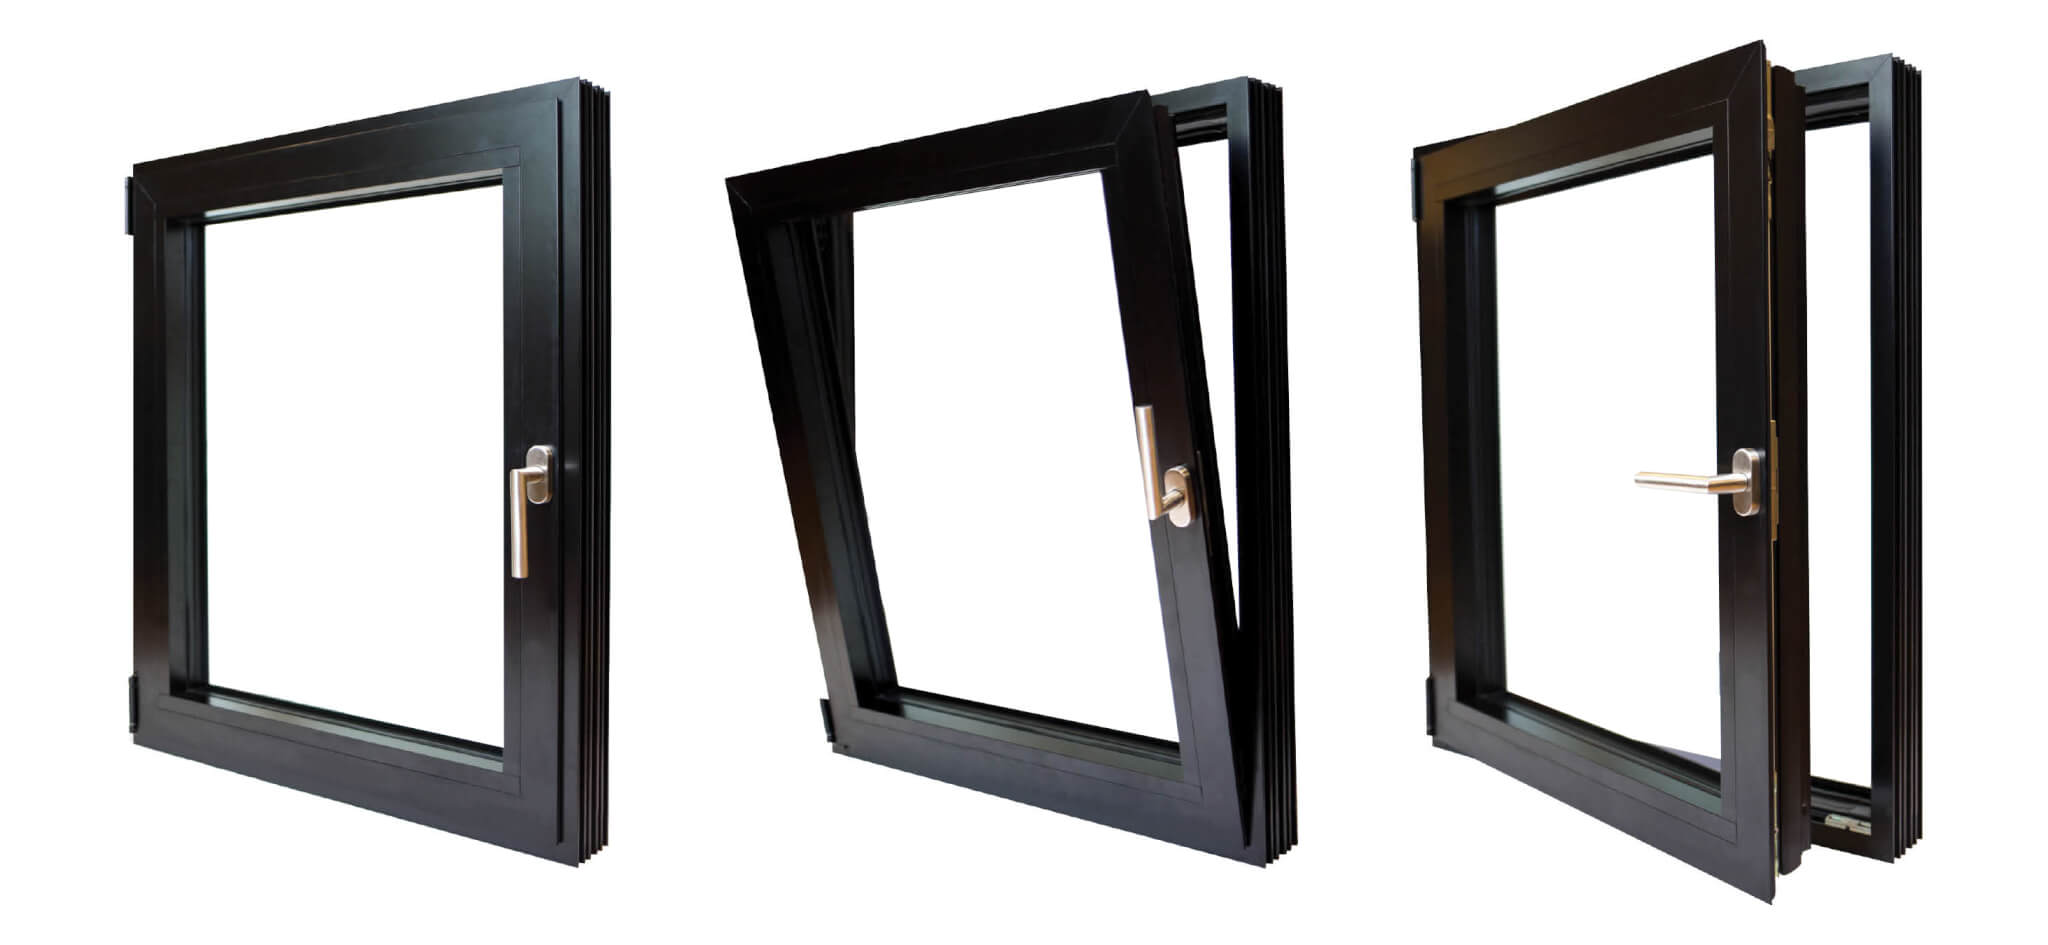 Aluminum Double Pane + Triple Pane European Windows